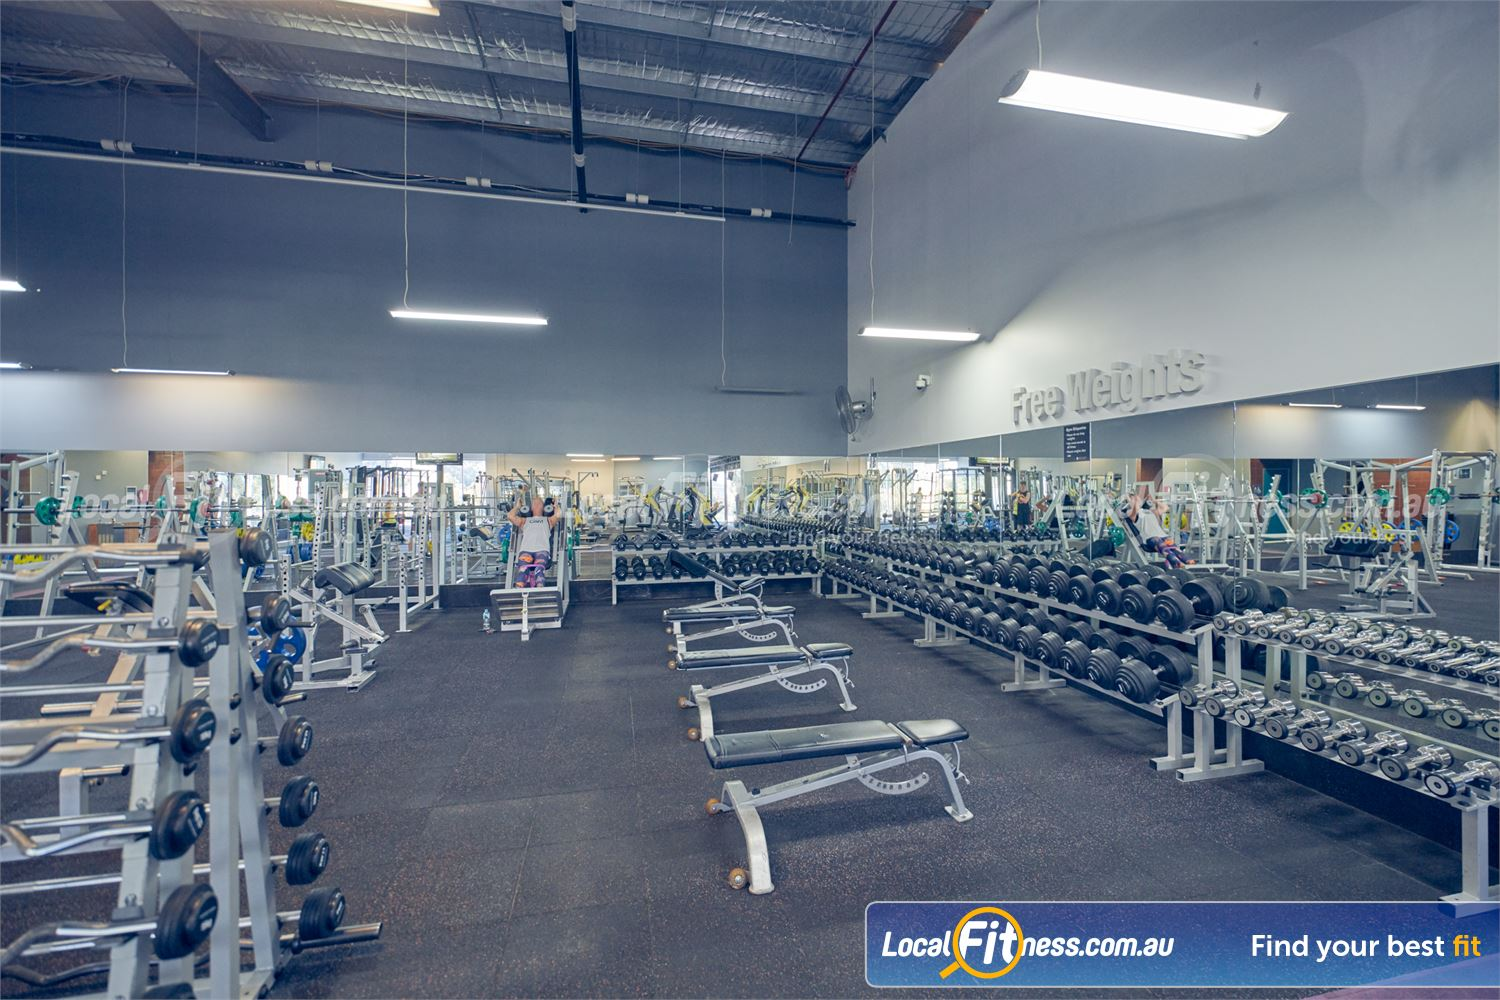 Element Fitness Health Club Nunawading The comprehensive free-weights area at Elements Fitness Health Club Nunawading.